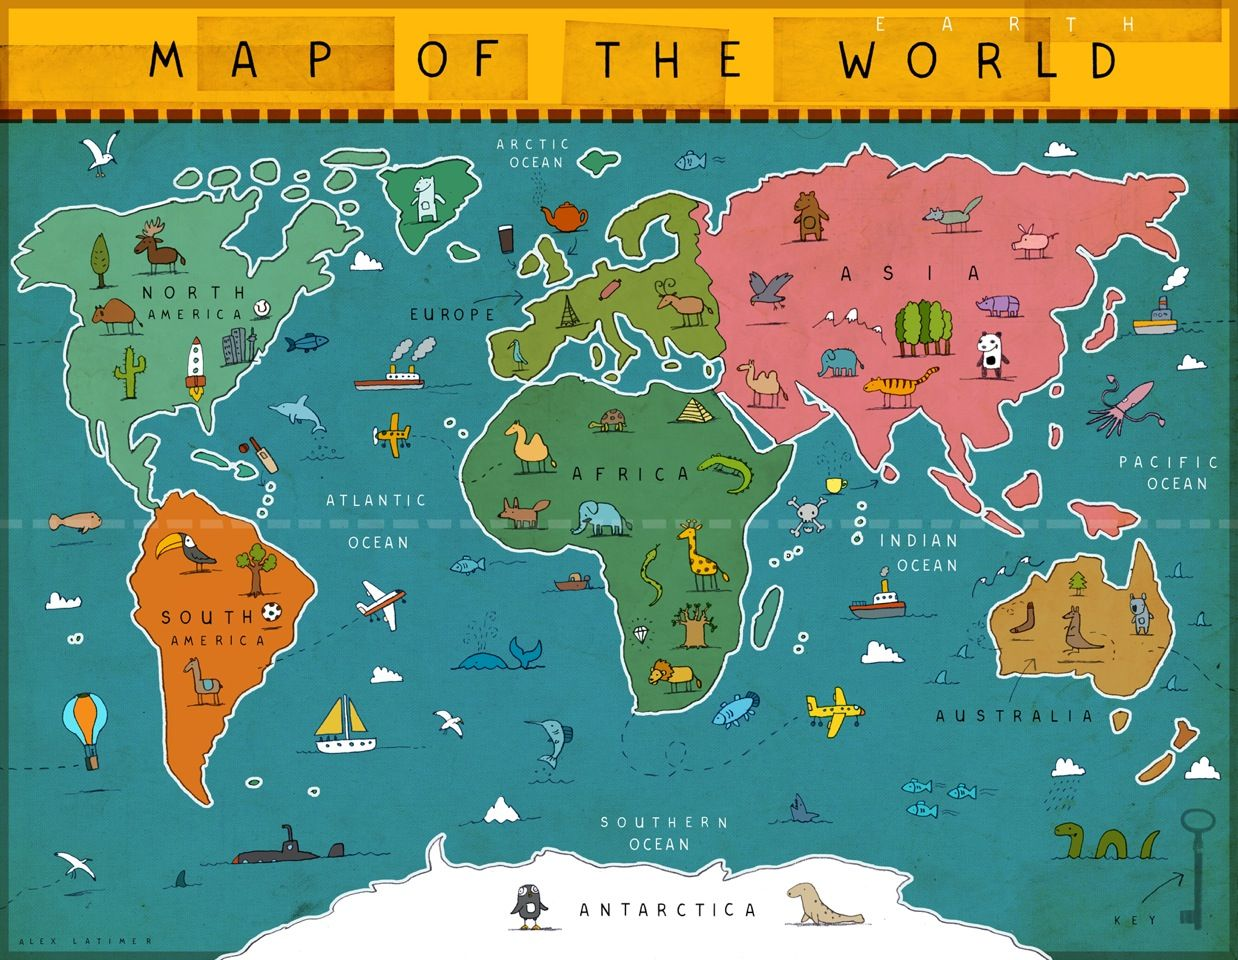 World map by designer alex latimer awesome open edition a3 world map by designer alex latimer awesome open edition a3 print signed by gumiabroncs Gallery